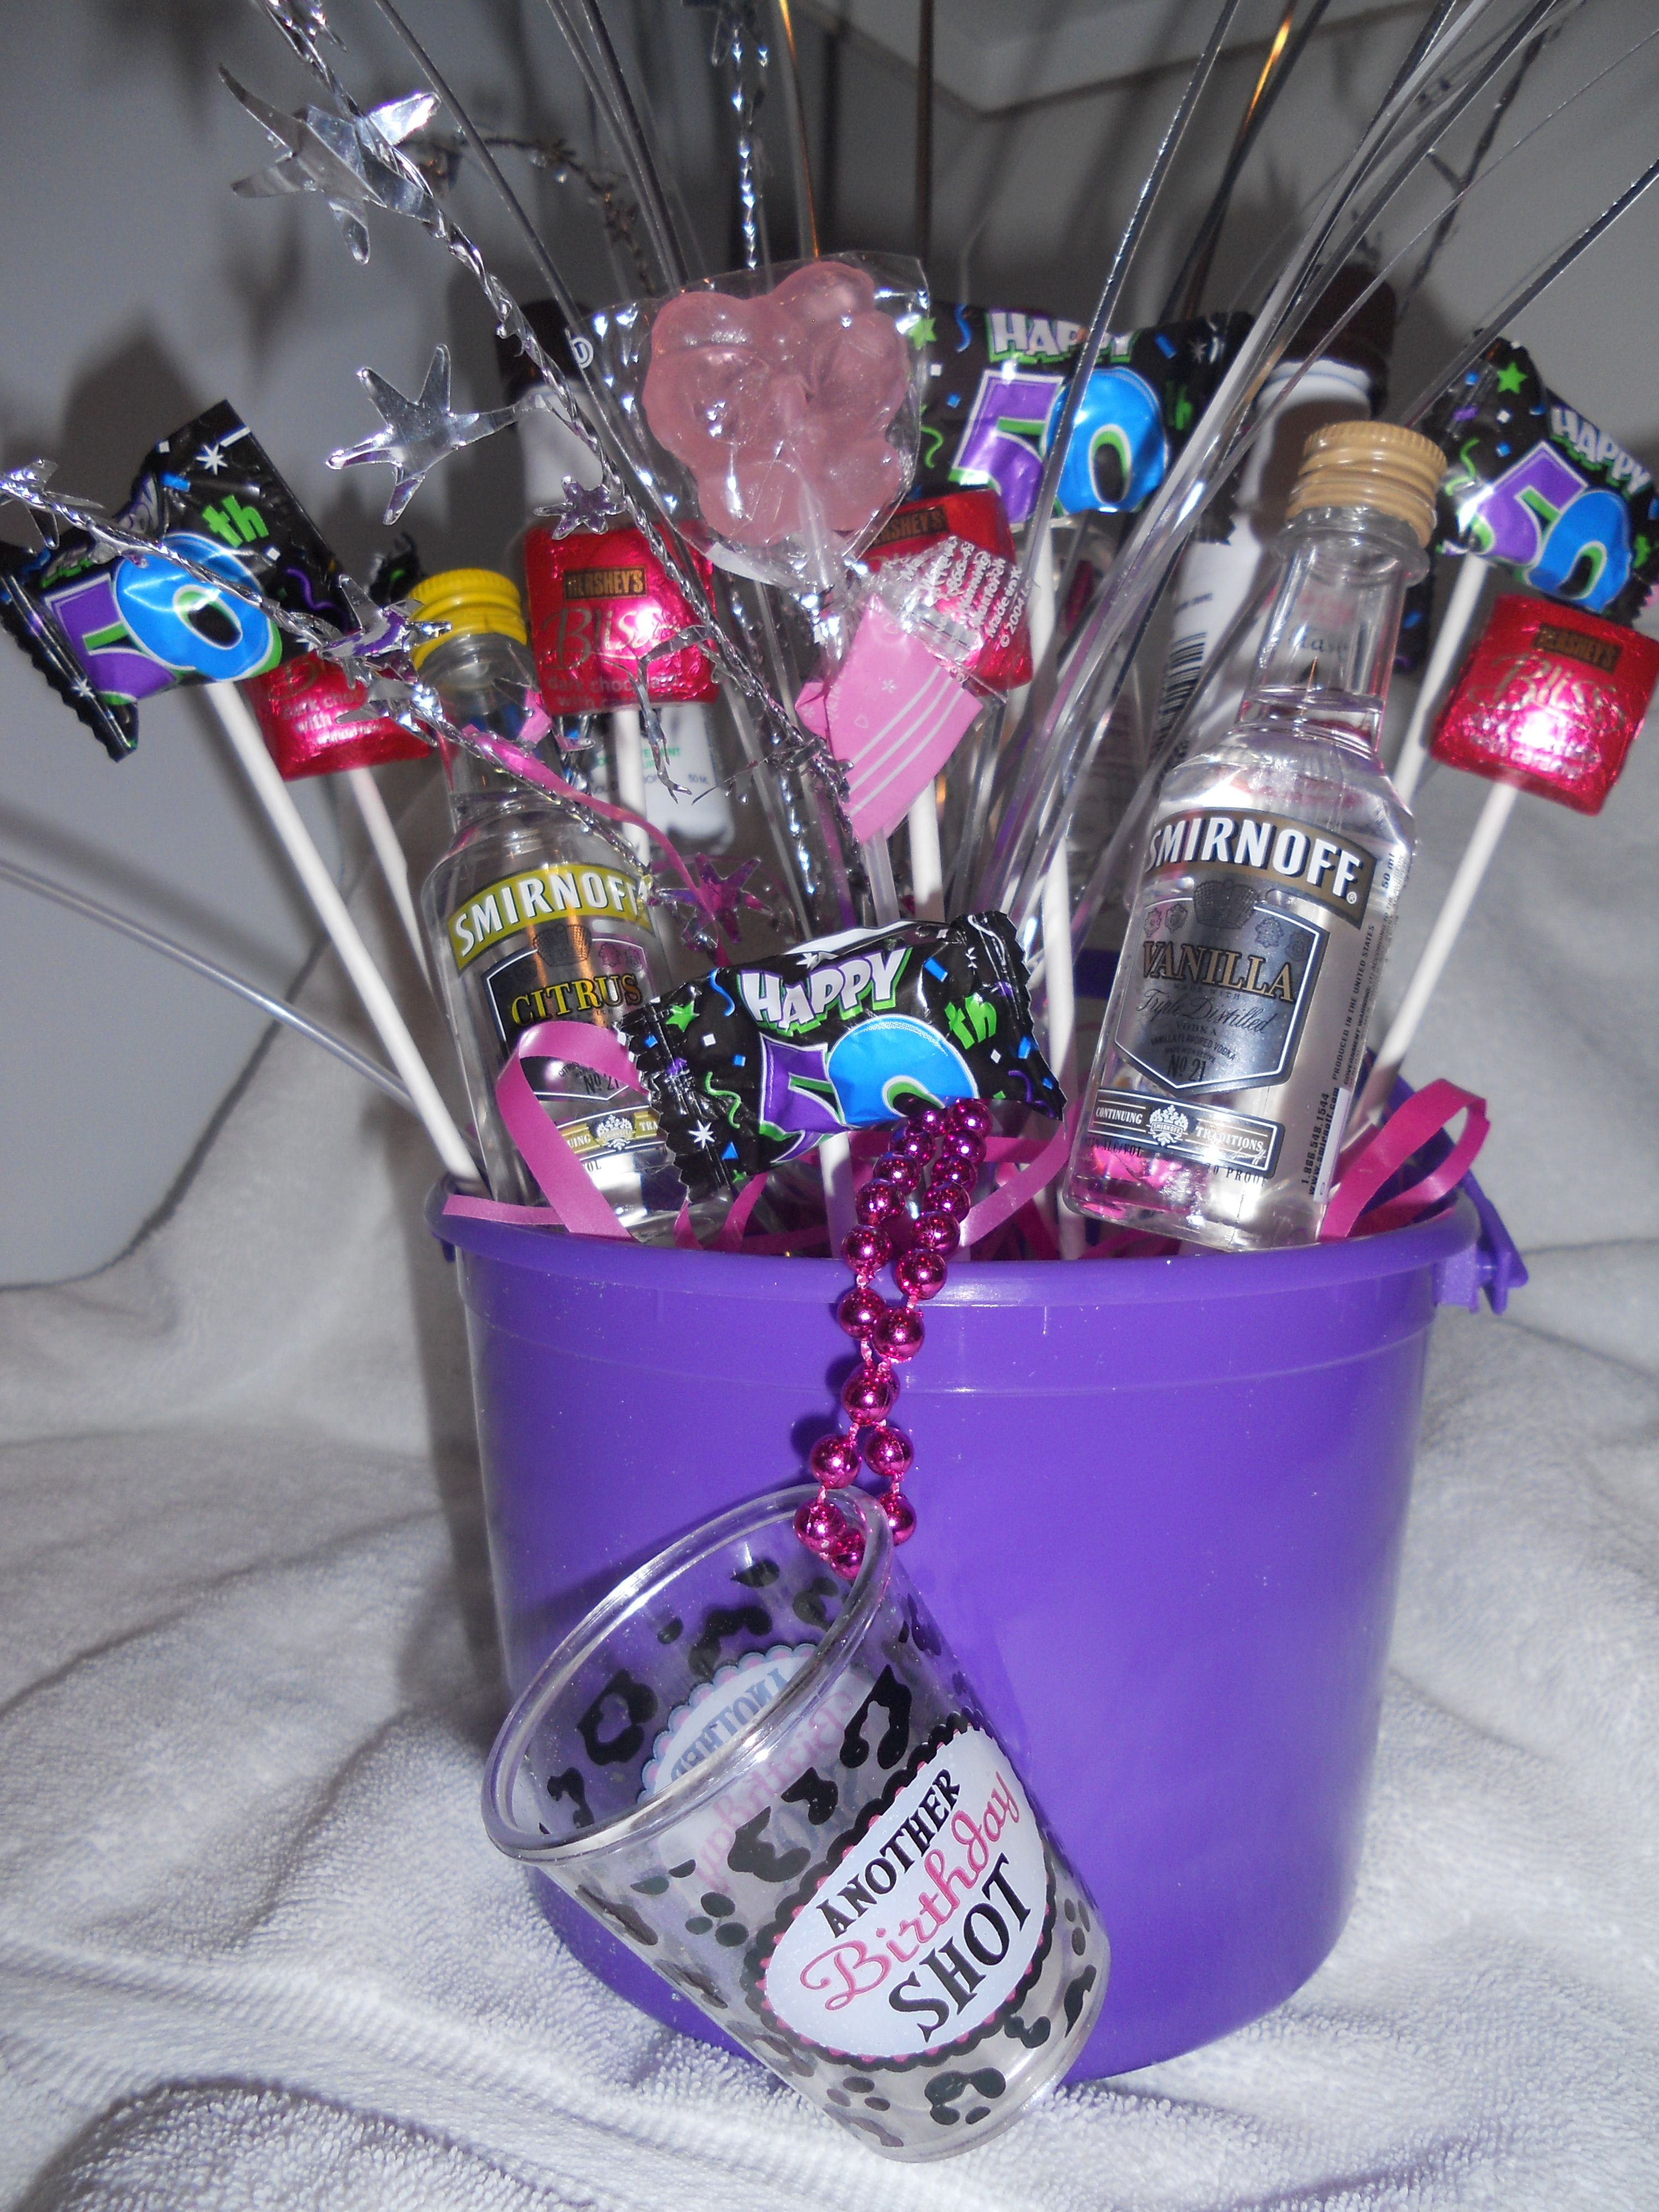 Best ideas about Gift Ideas For 50th Birthday . Save or Pin Made this for my friend s 50th birthday Now.